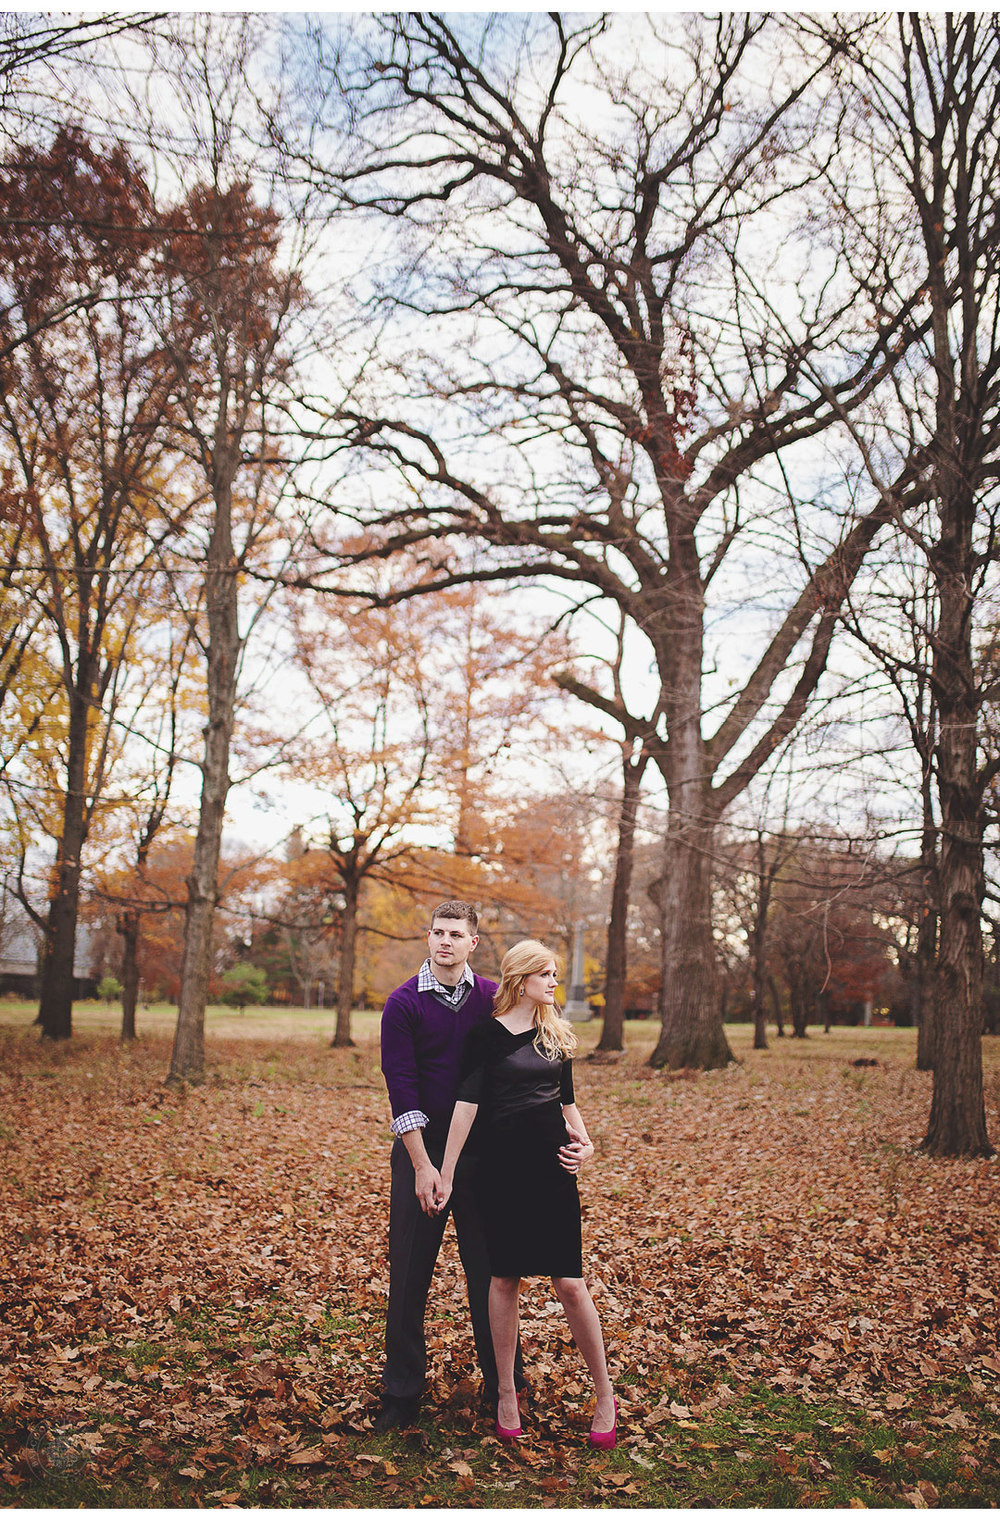 april-jared-dayton-engagement-photography-10.jpg